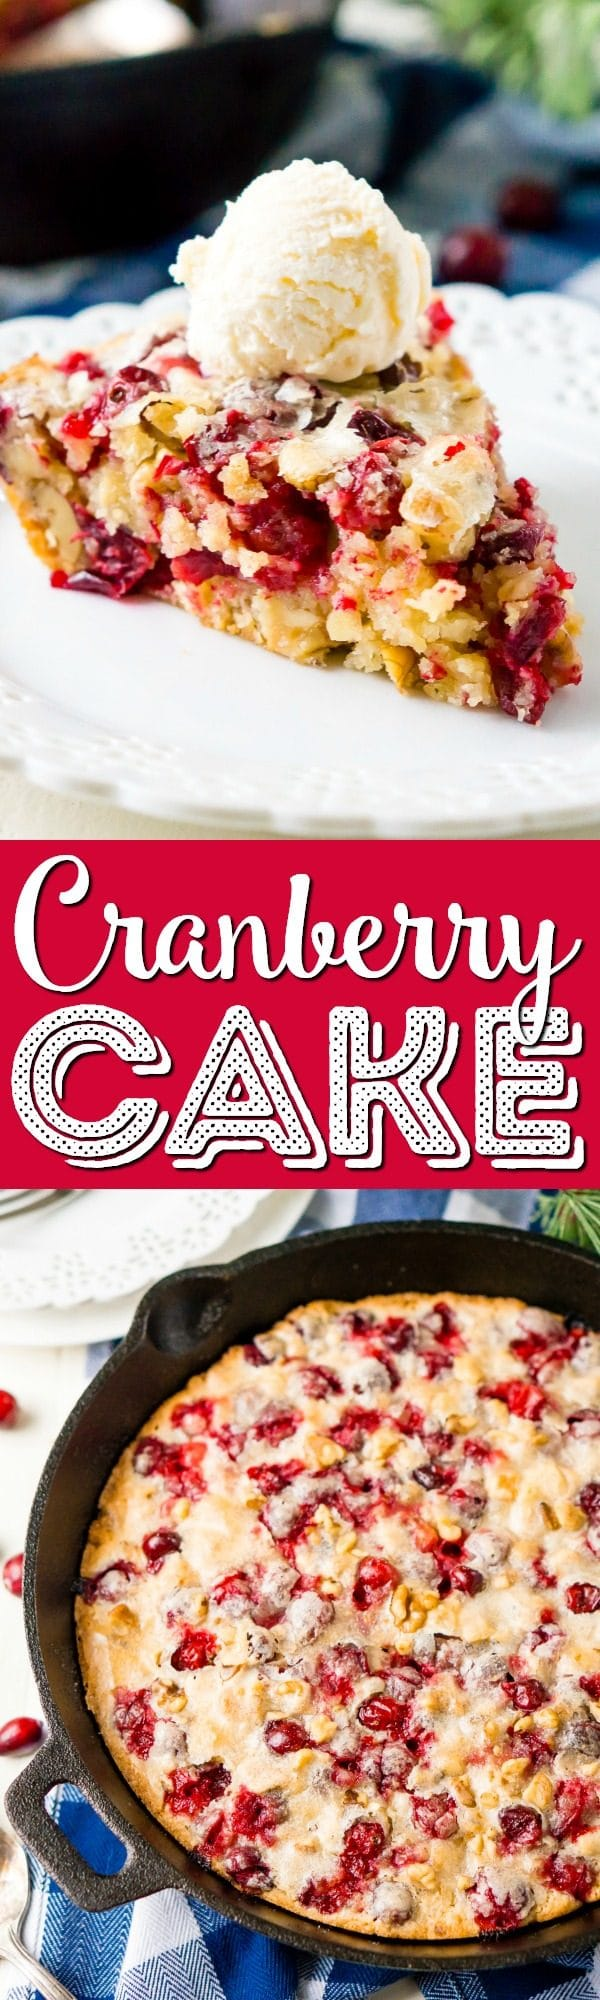 This Cranberry Cake combines sweet and tart in a delicious holiday dessert bursting with fresh red berries! A simple, old fashioned, single layer cake baked right in a skillet!